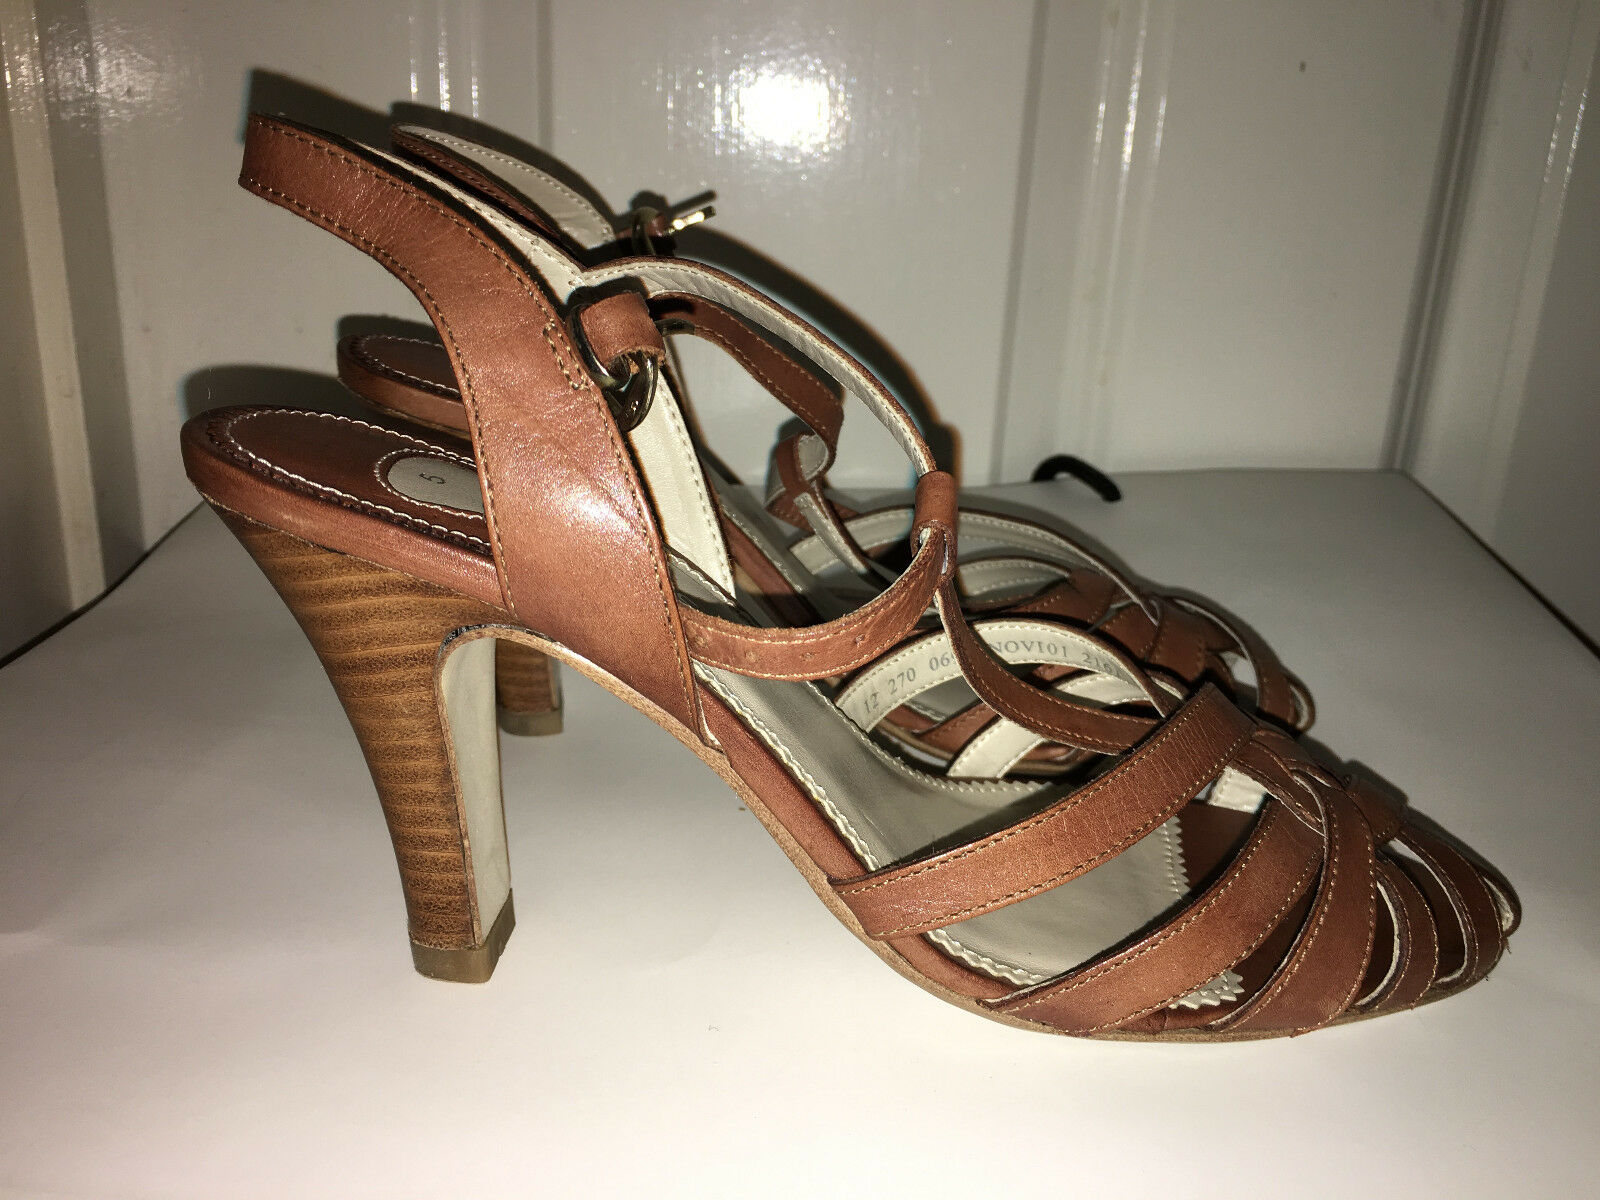 Very rare  Brand new Barrats sandals shoes, real leather 5 UK, 38